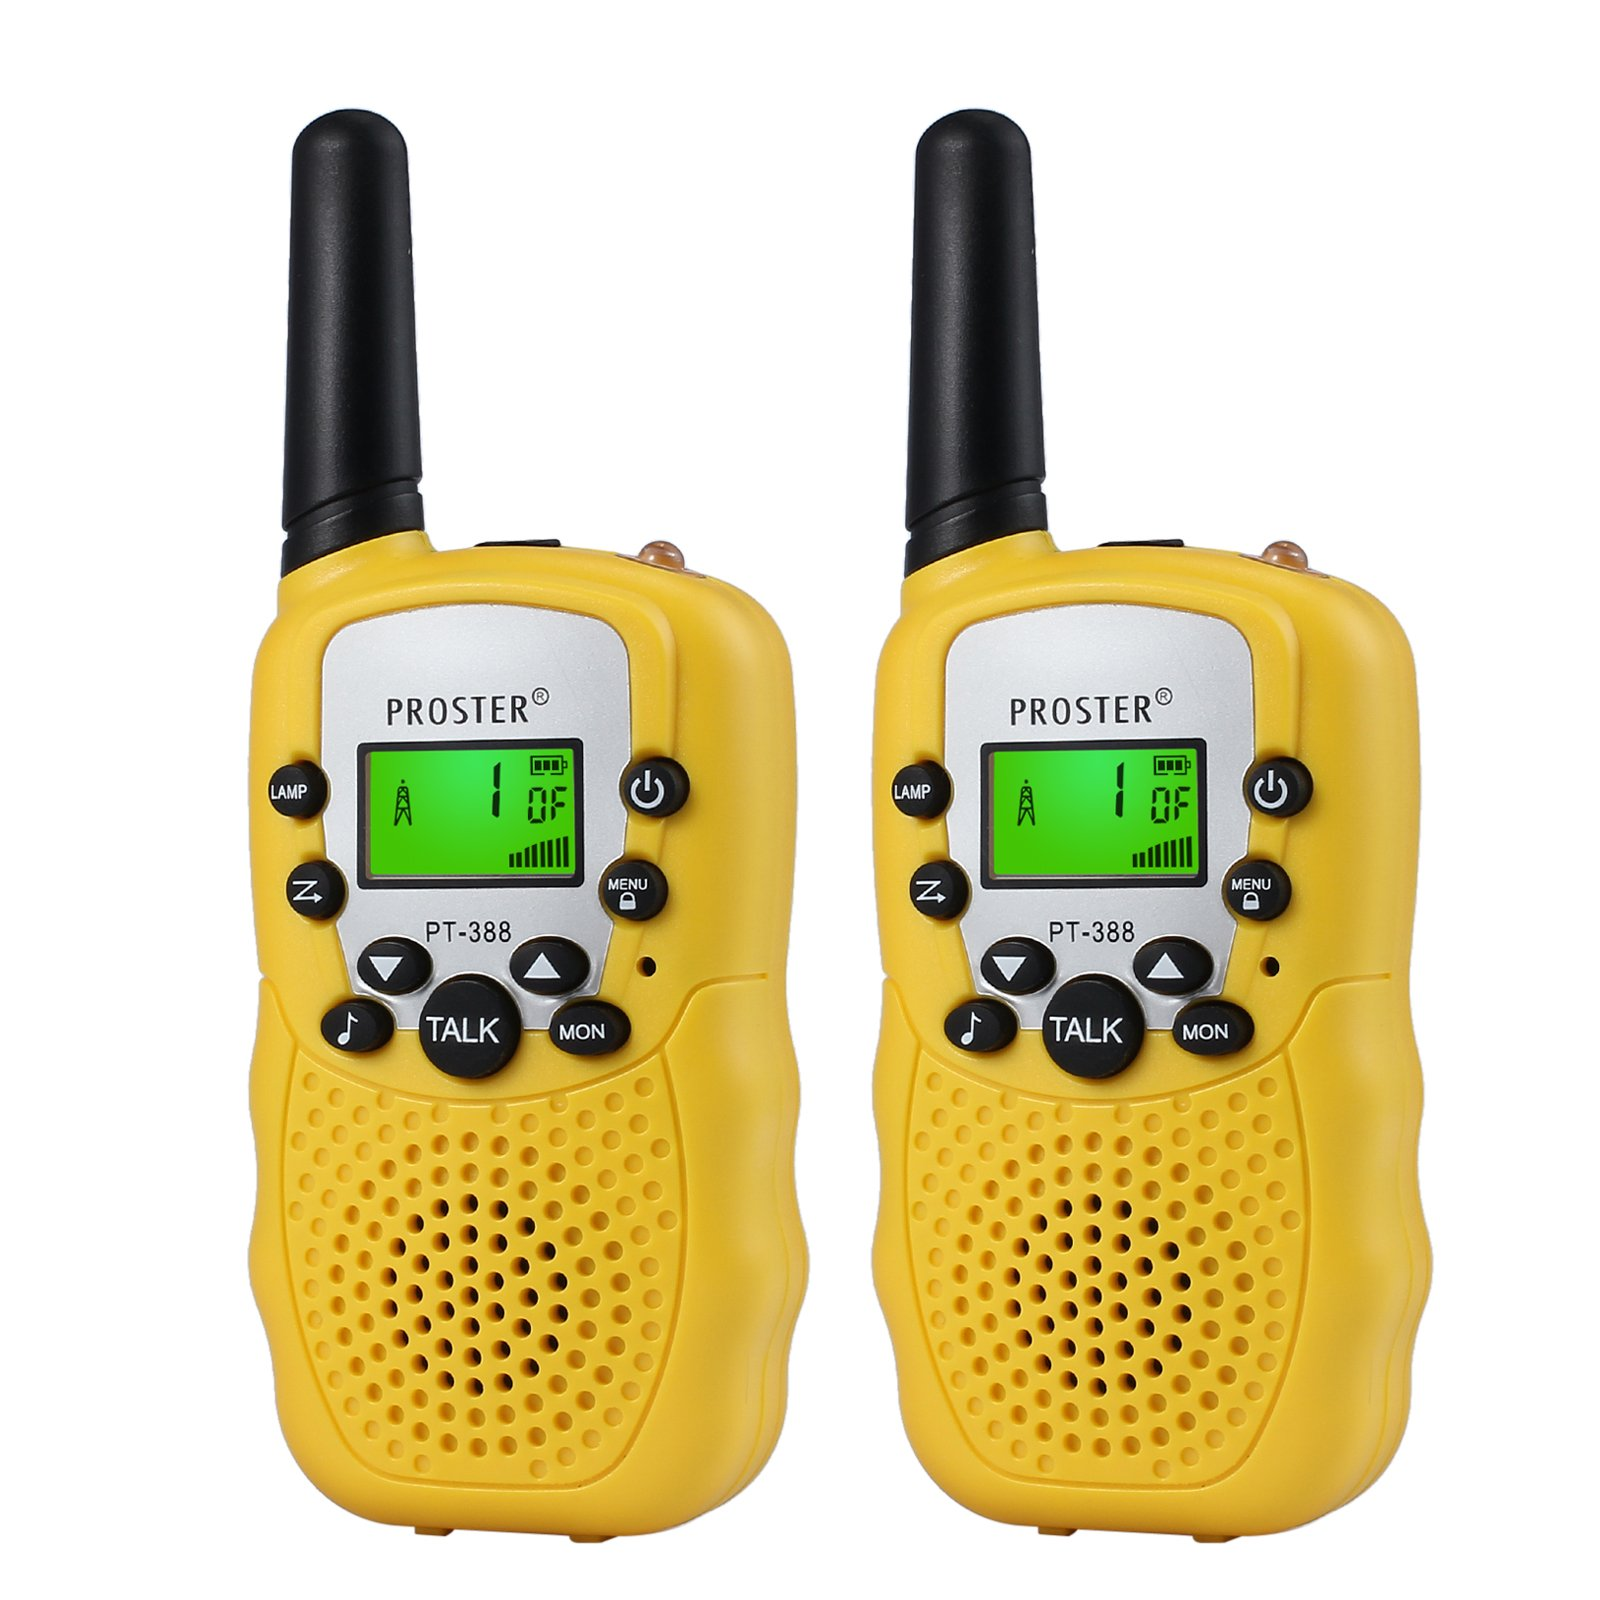 Proster Walkie Talkies New Version T-388 LCD 22 Channels Wireless Walky Talky Two-Way Radios Long Range for Supermarkets Shopping Centres Festivals(Yellow)